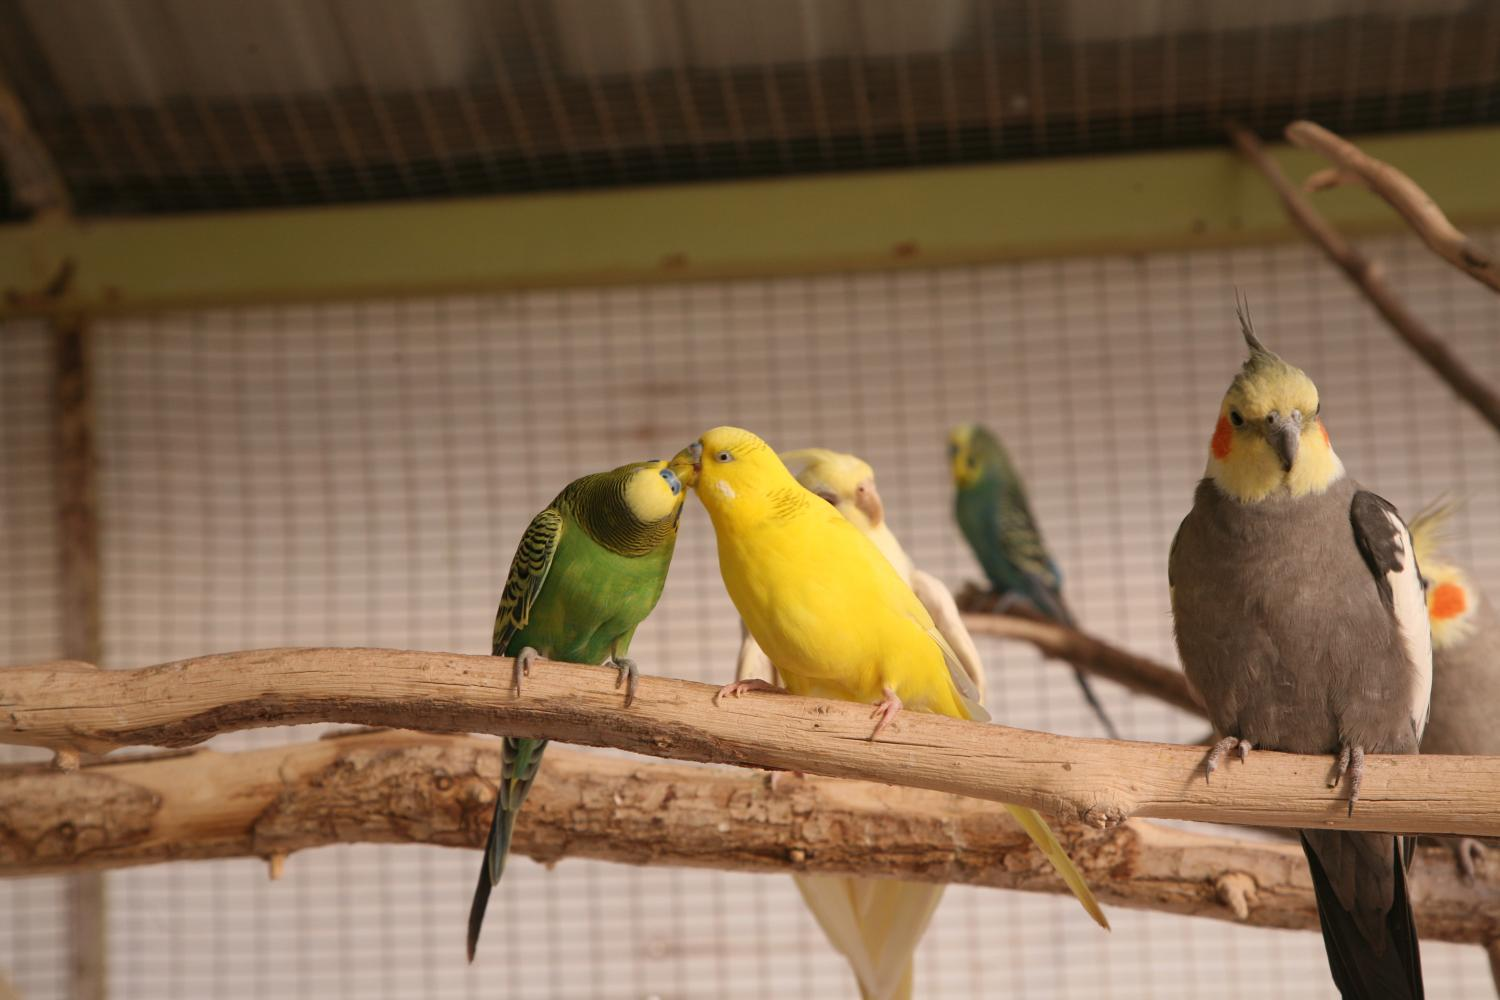 Parakeets kiss each other while perched in an aviary